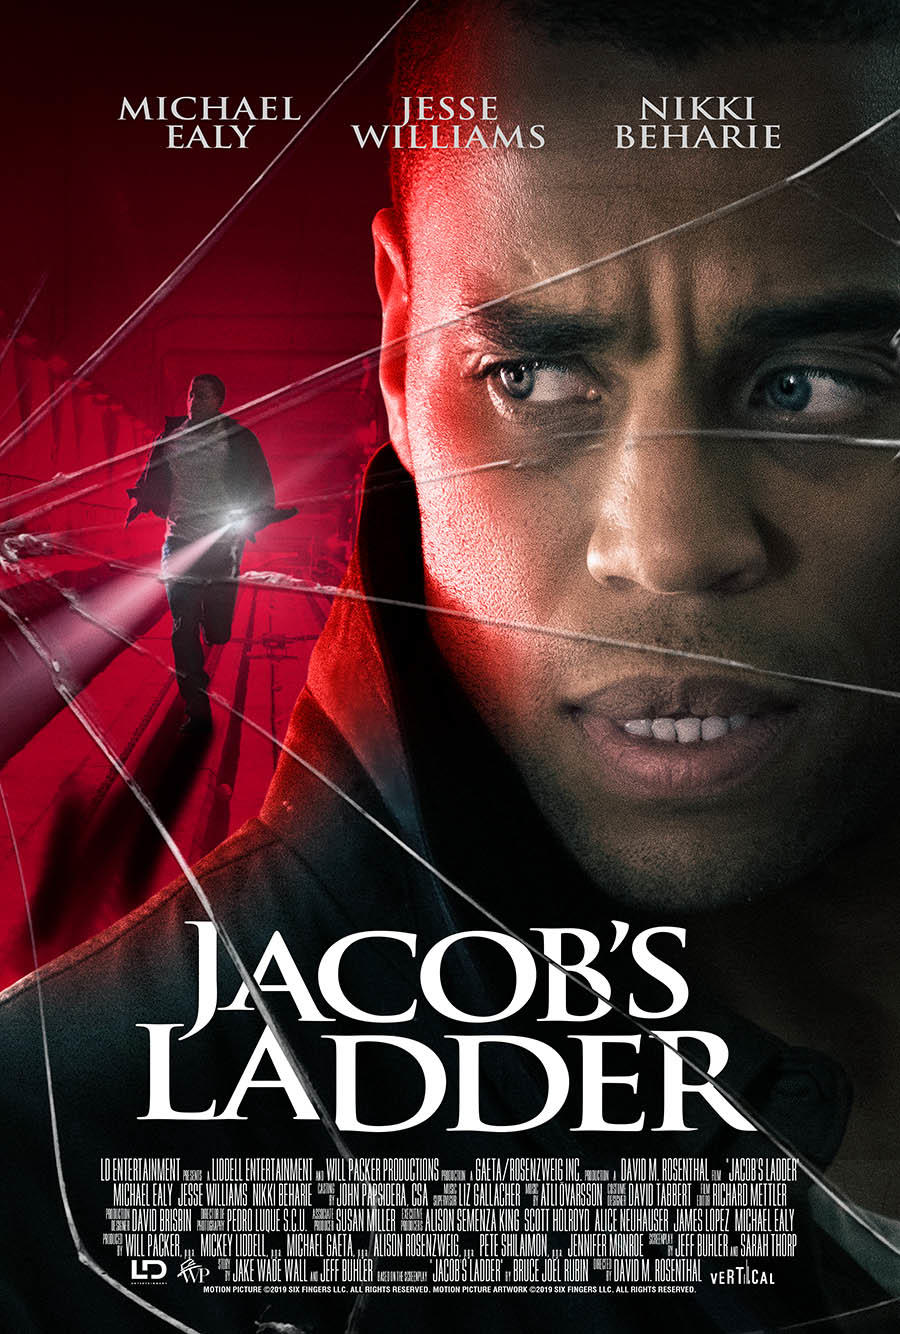 Jacob's Ladder poster art